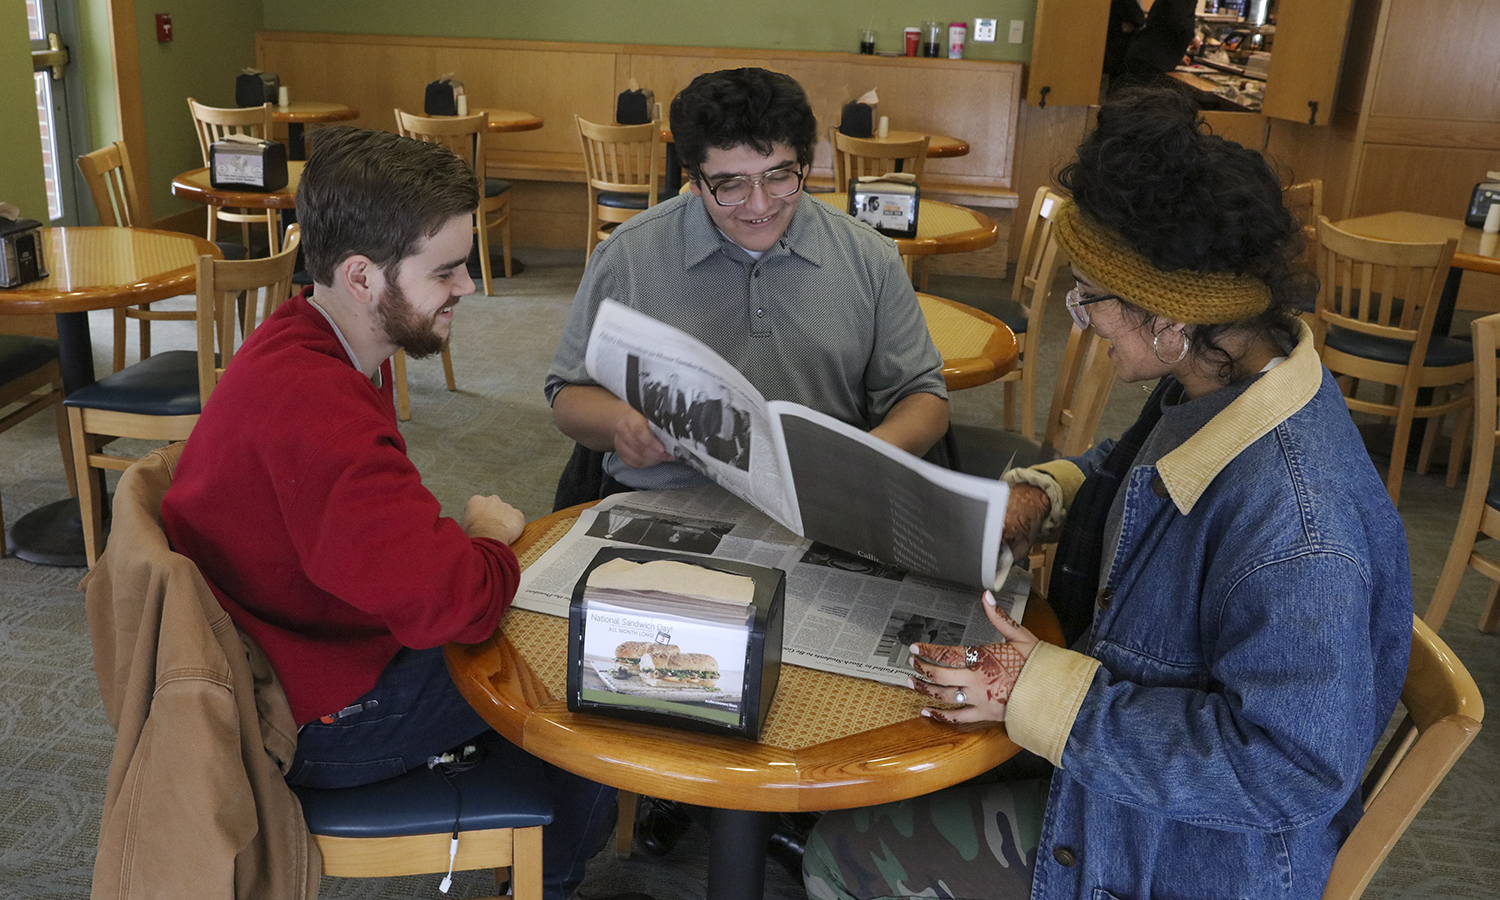 James Monaco '20, Kevin Cervantes '21 and Divya Tewari' 20 discuss current events while reading <i>The New York Times</i> in the Scandling Campus Center.